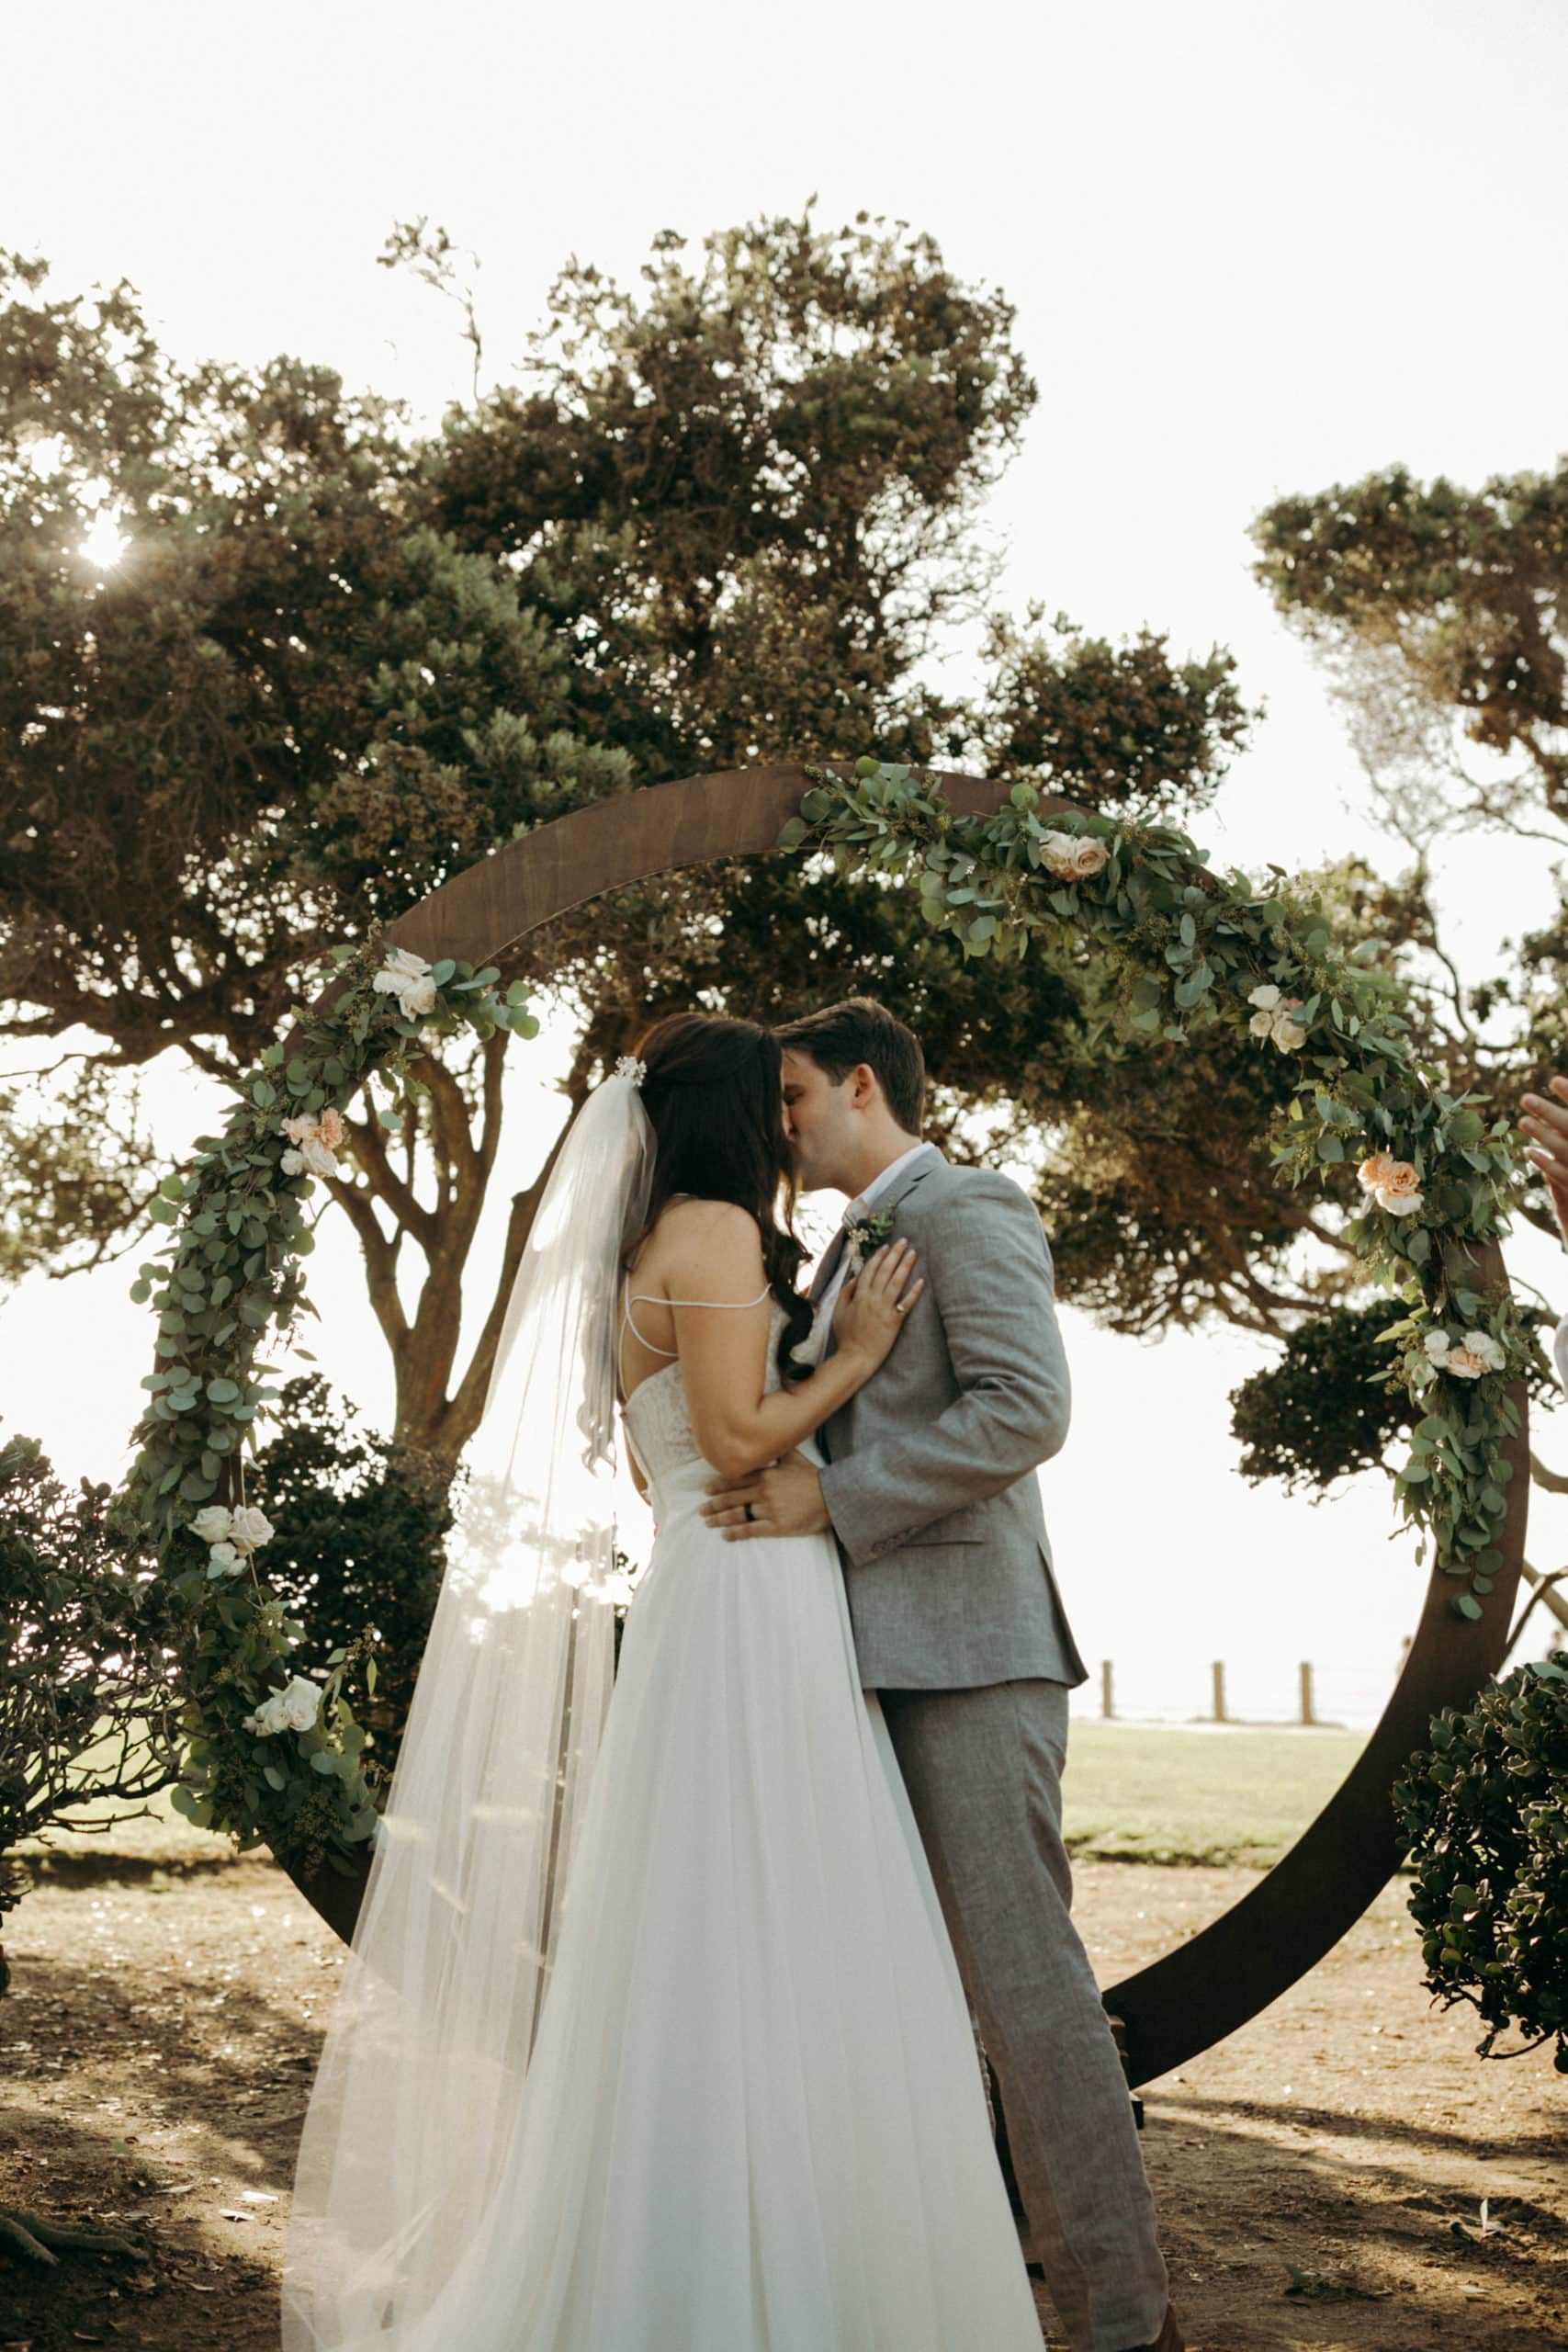 Ellen Browning Scripps Park Intimate Destination Wedding